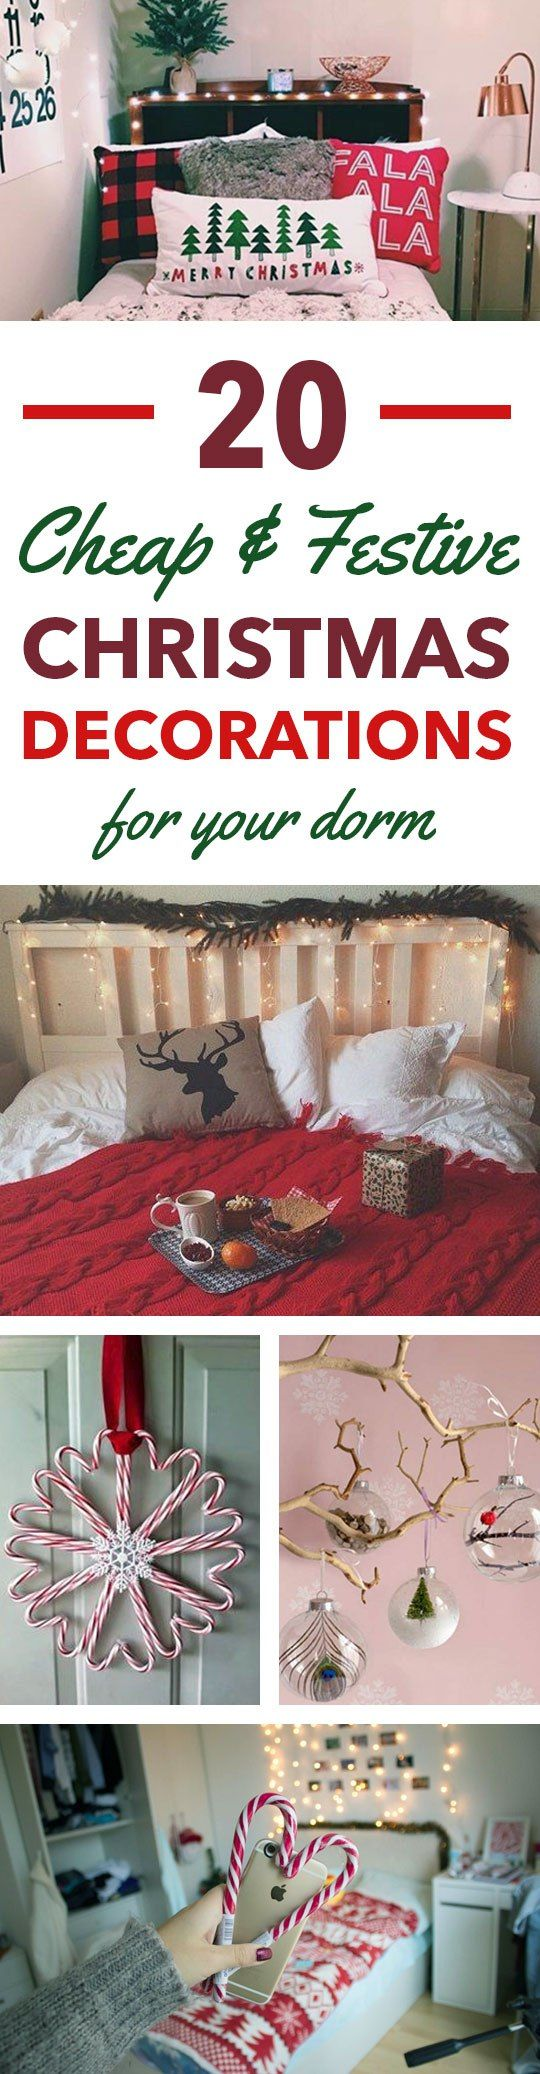 Holiday room decor diys for college